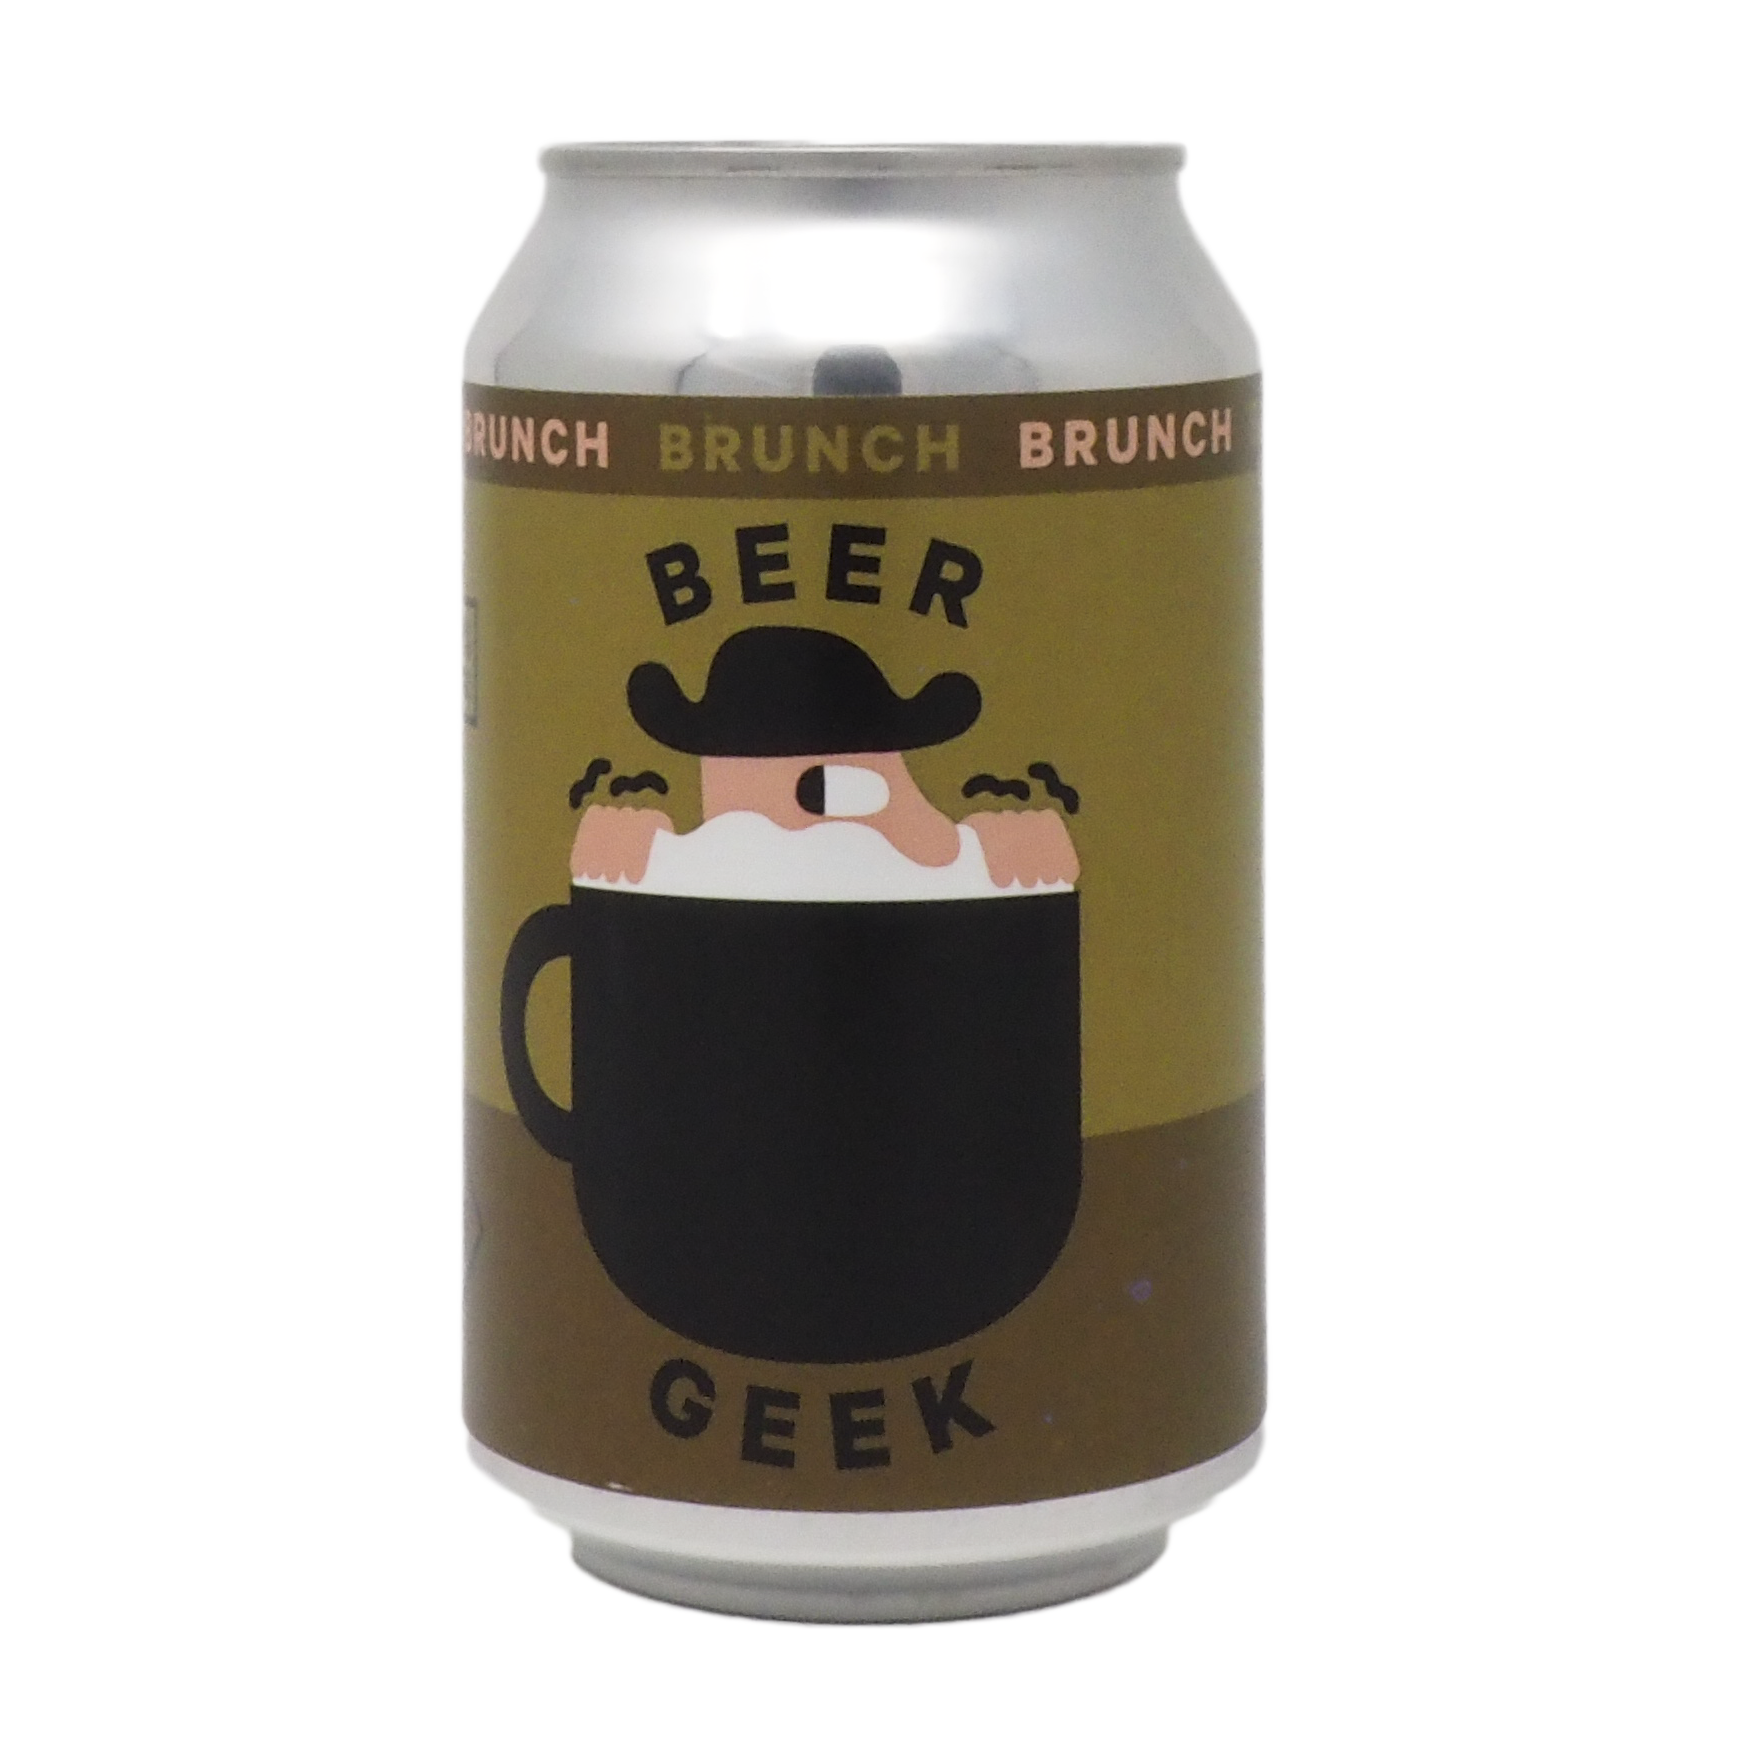 Beer Geek Brunch